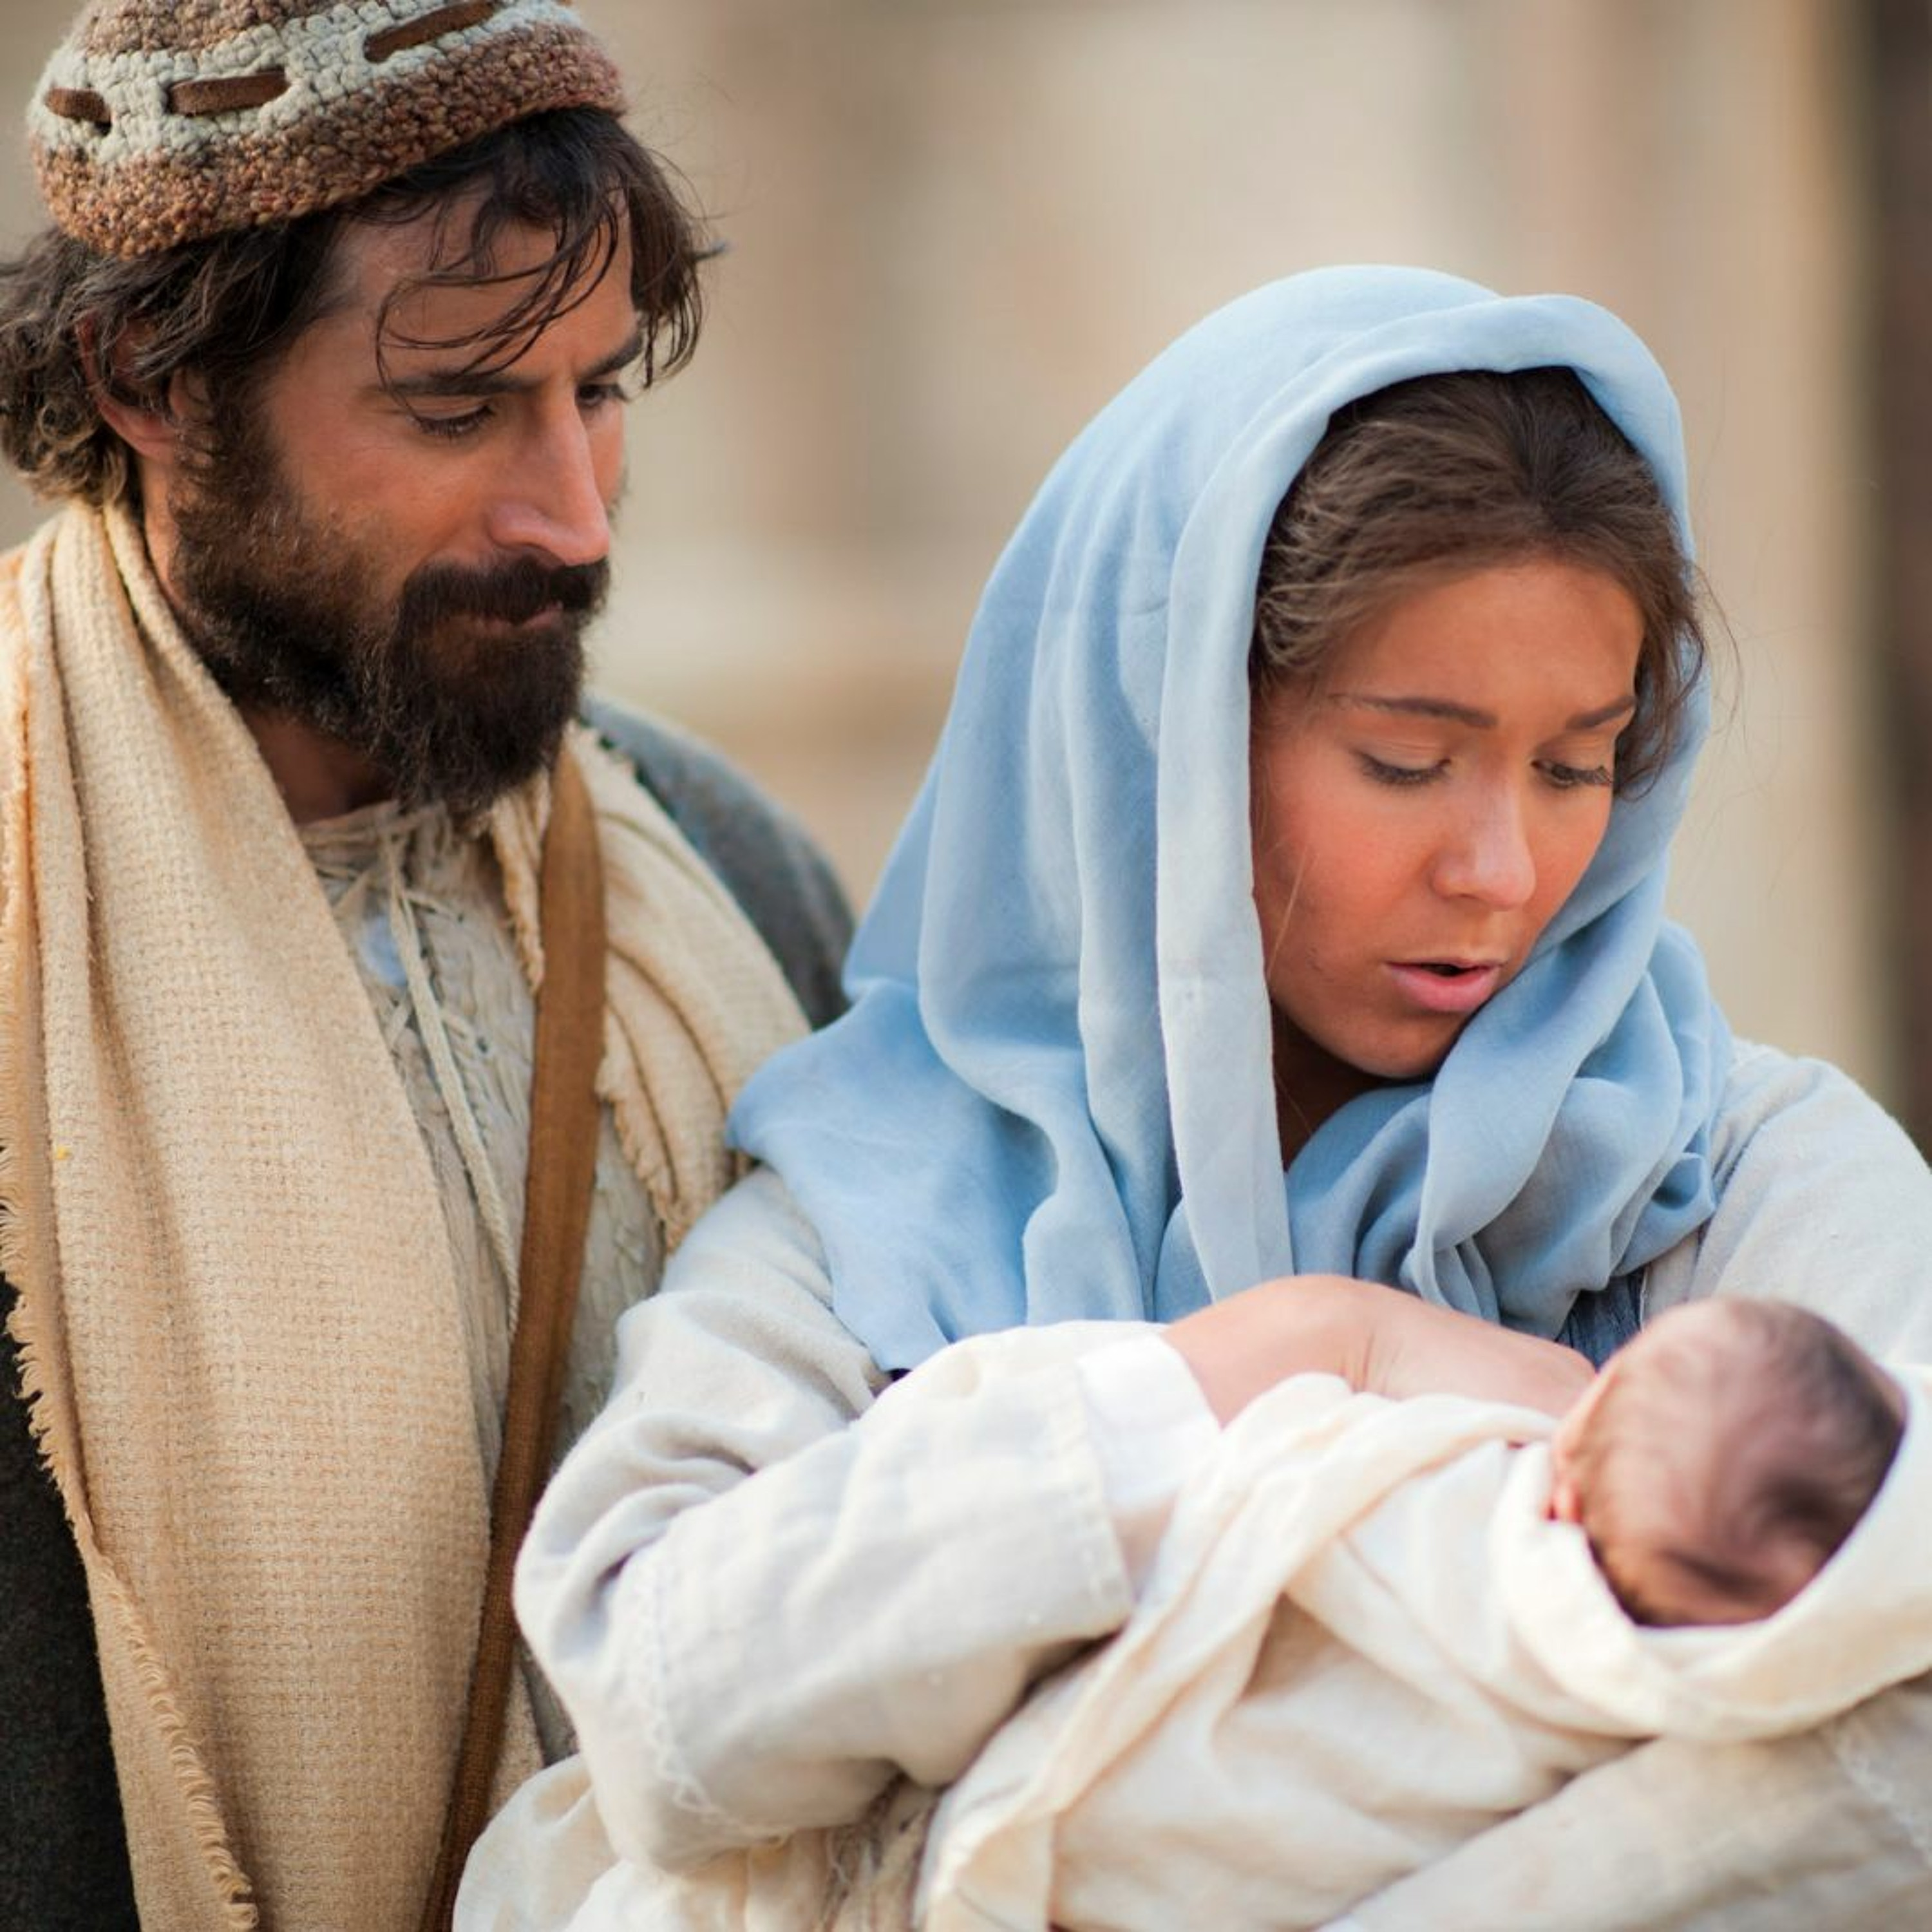 When was Jesus Christ really born? The...